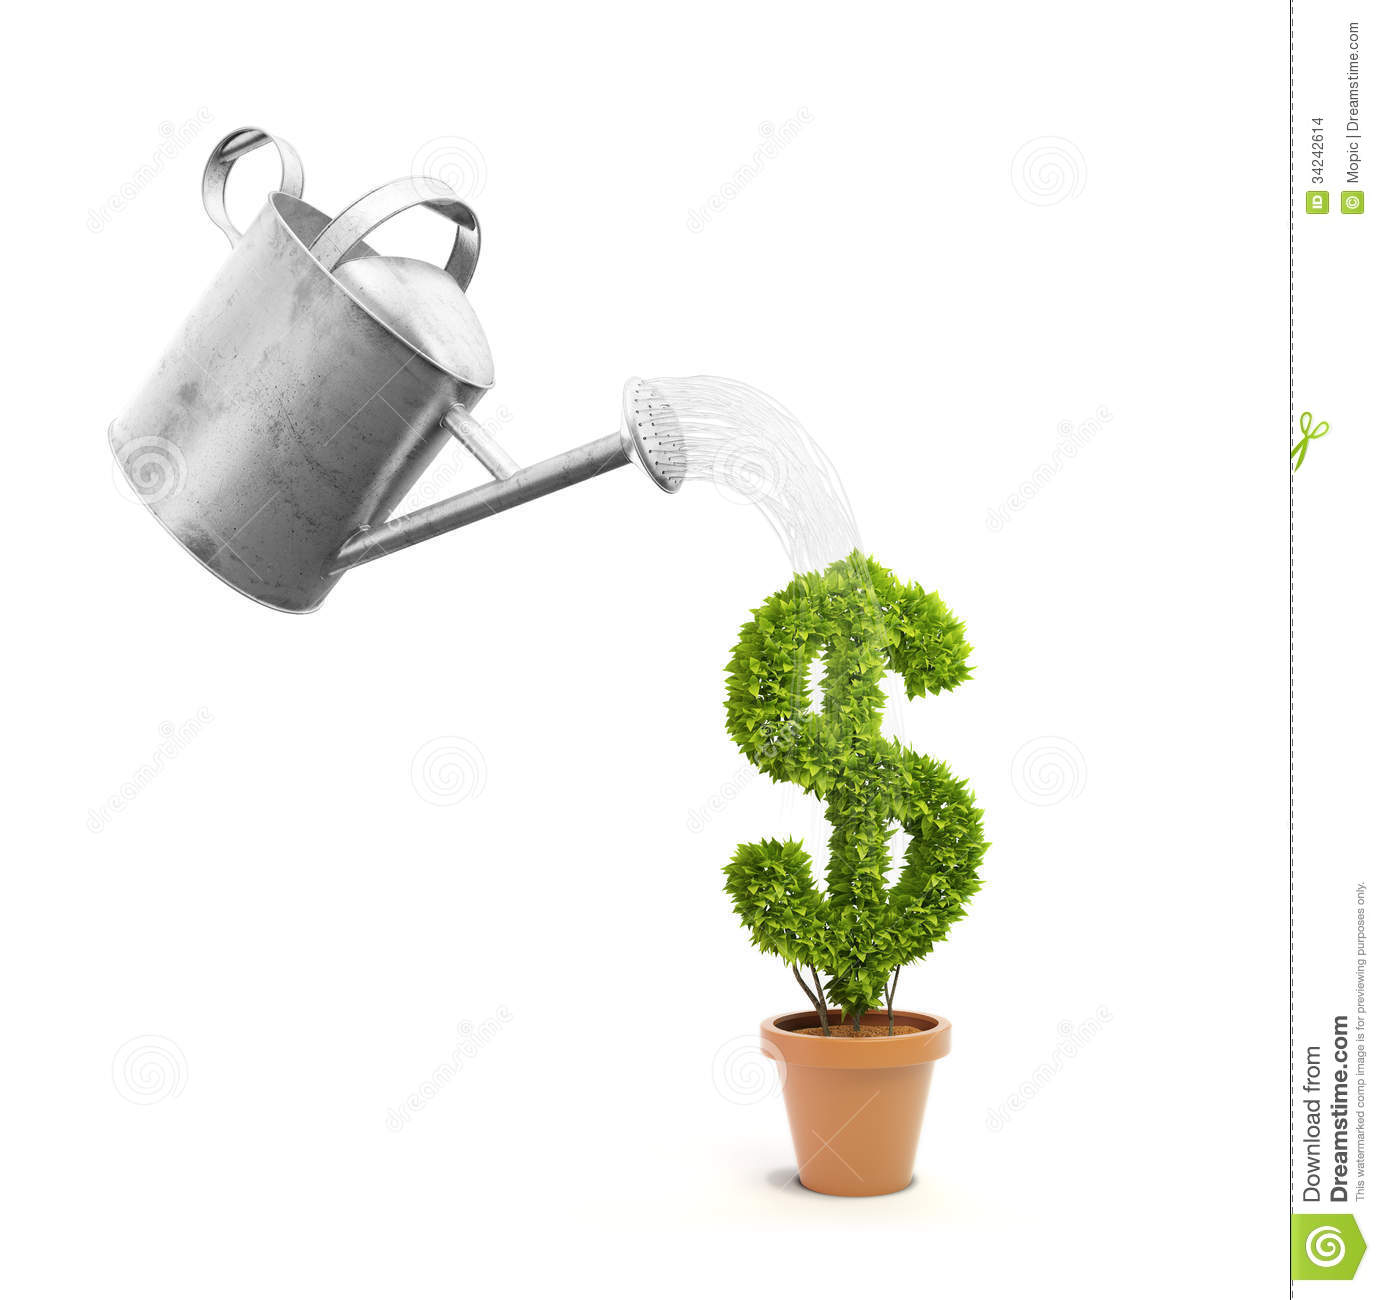 Plant Watering Cans A Pot Plant Shaped Like A Dollar Sign Stock Illustration